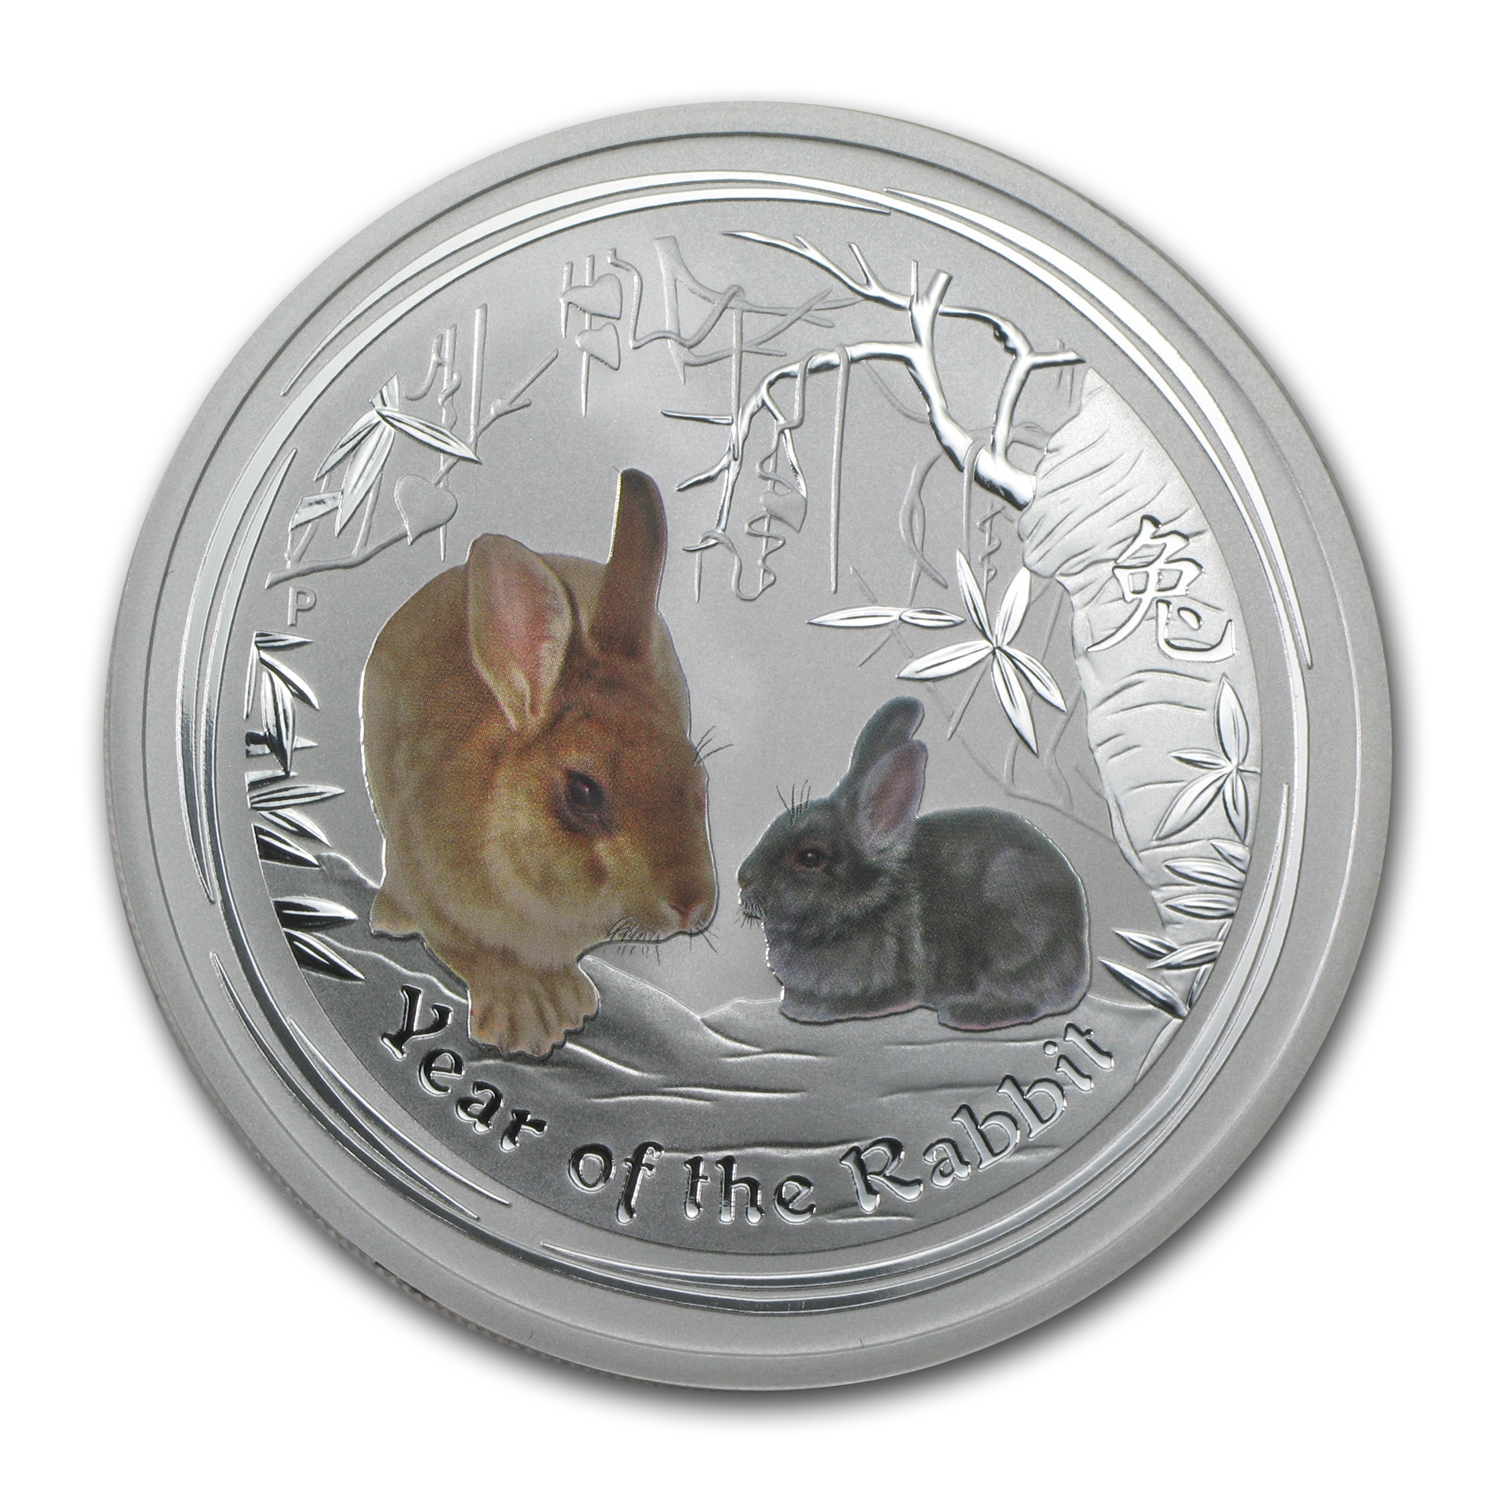 2011 2 oz Silver Australian Year of the Rabbit (ANDA, Colorized)